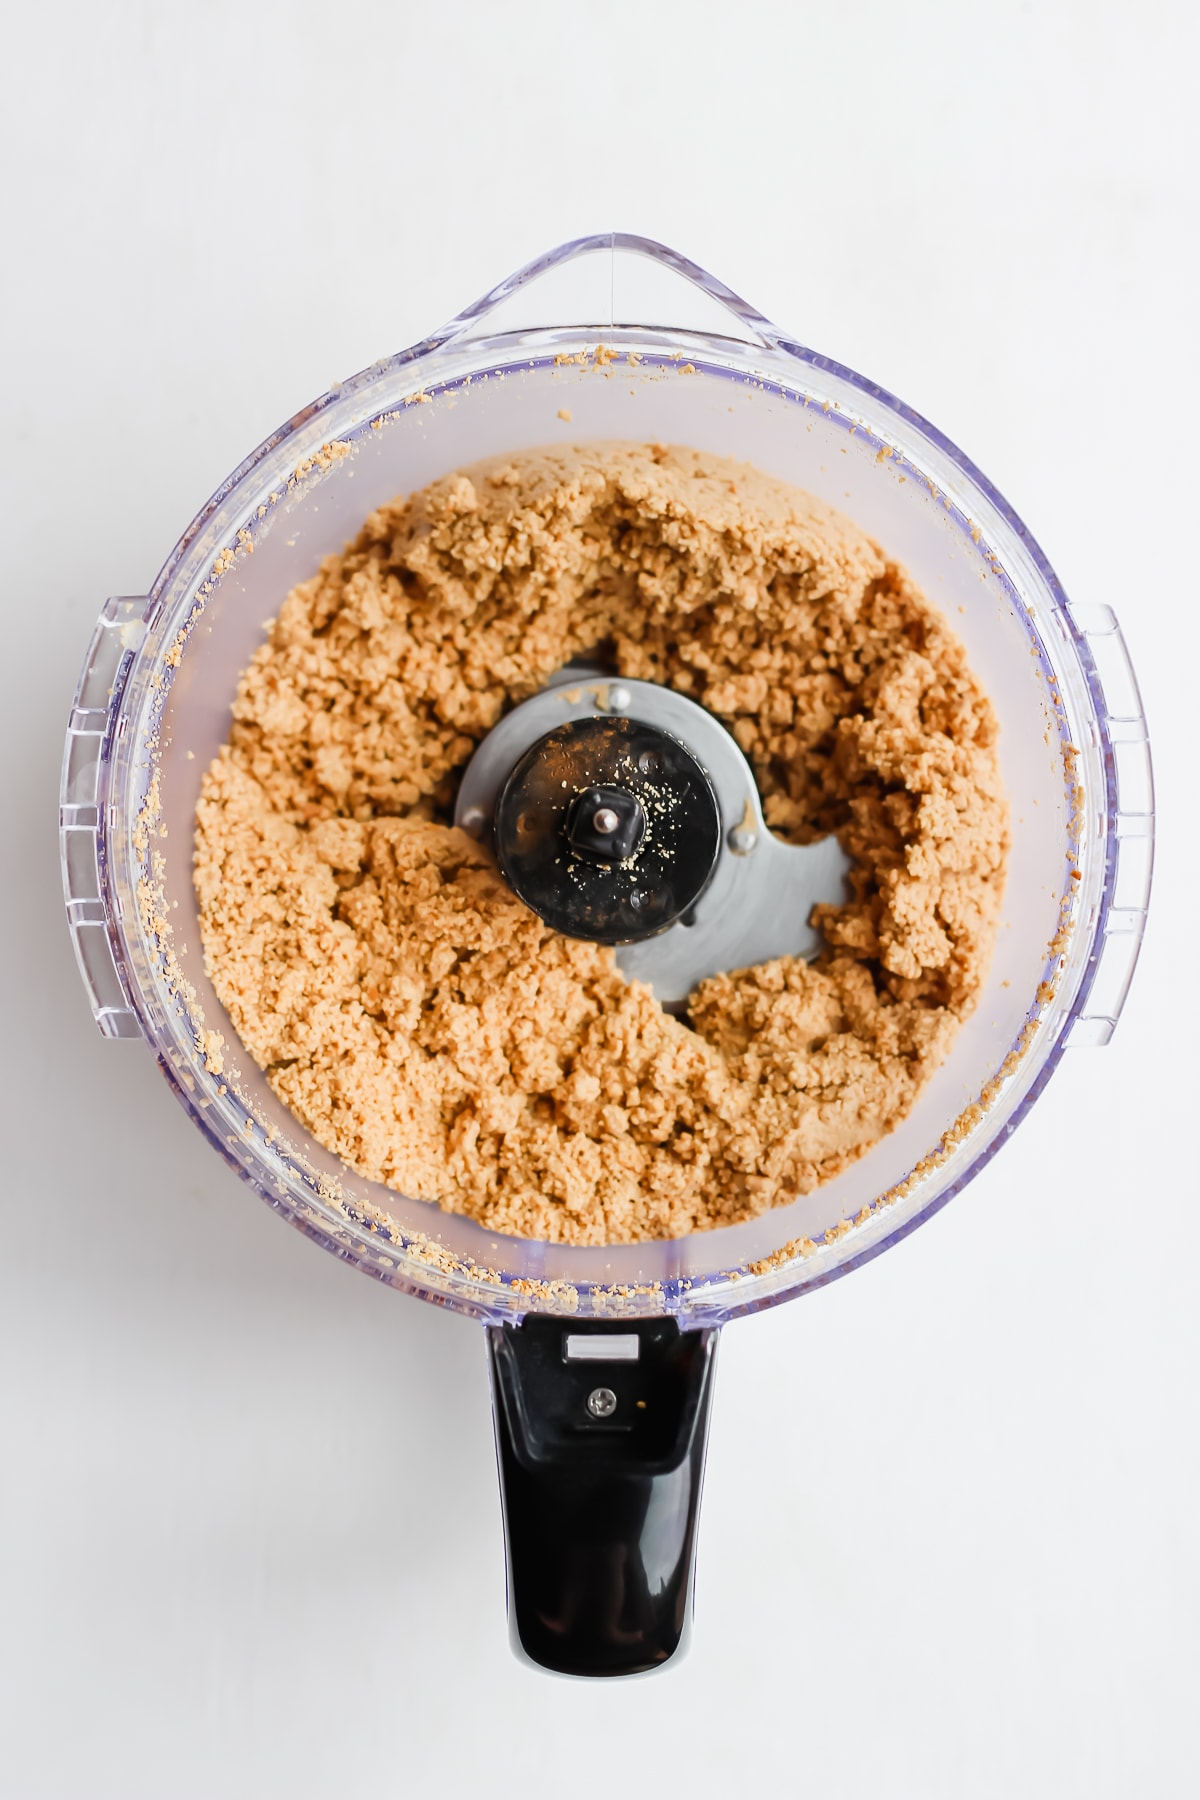 Creamy Roasted Cinnamon Cashew Butter - rich, creamy and delicious homemade cashew butter! So easy to make at home! #whole30 #paleo